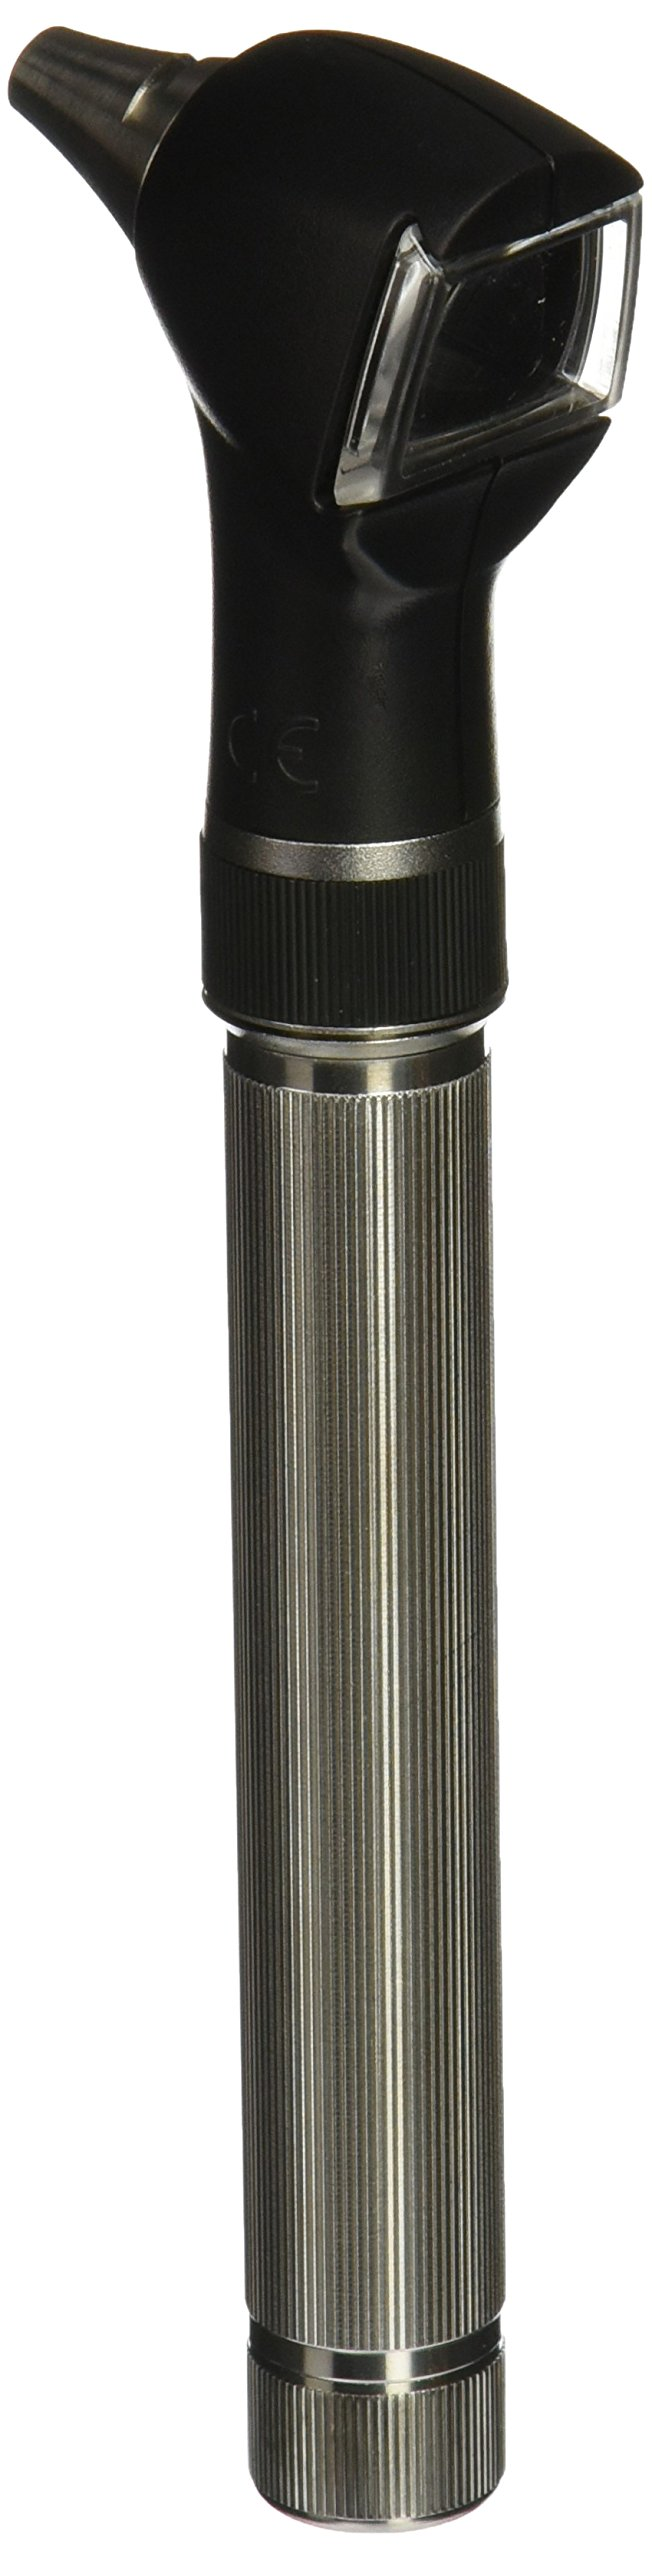 Welch Allyn WEL22821 PocketScope Otoscope with''AA'' Handle and Soft Case by Welch Allyn (Image #2)